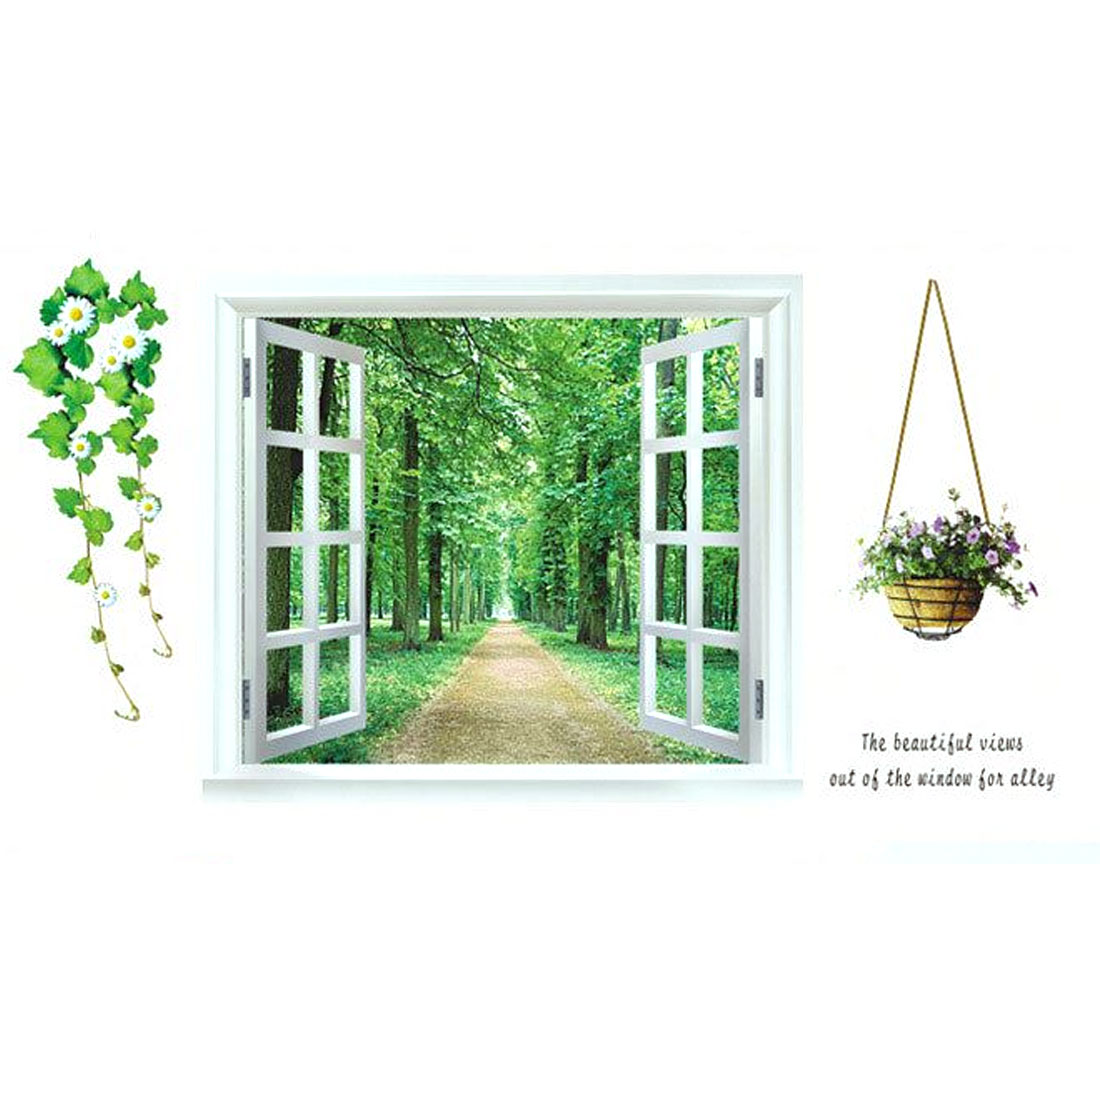 Home 3D Window Scenery Pattern Art Decal Wall Sticker Mural Decoration